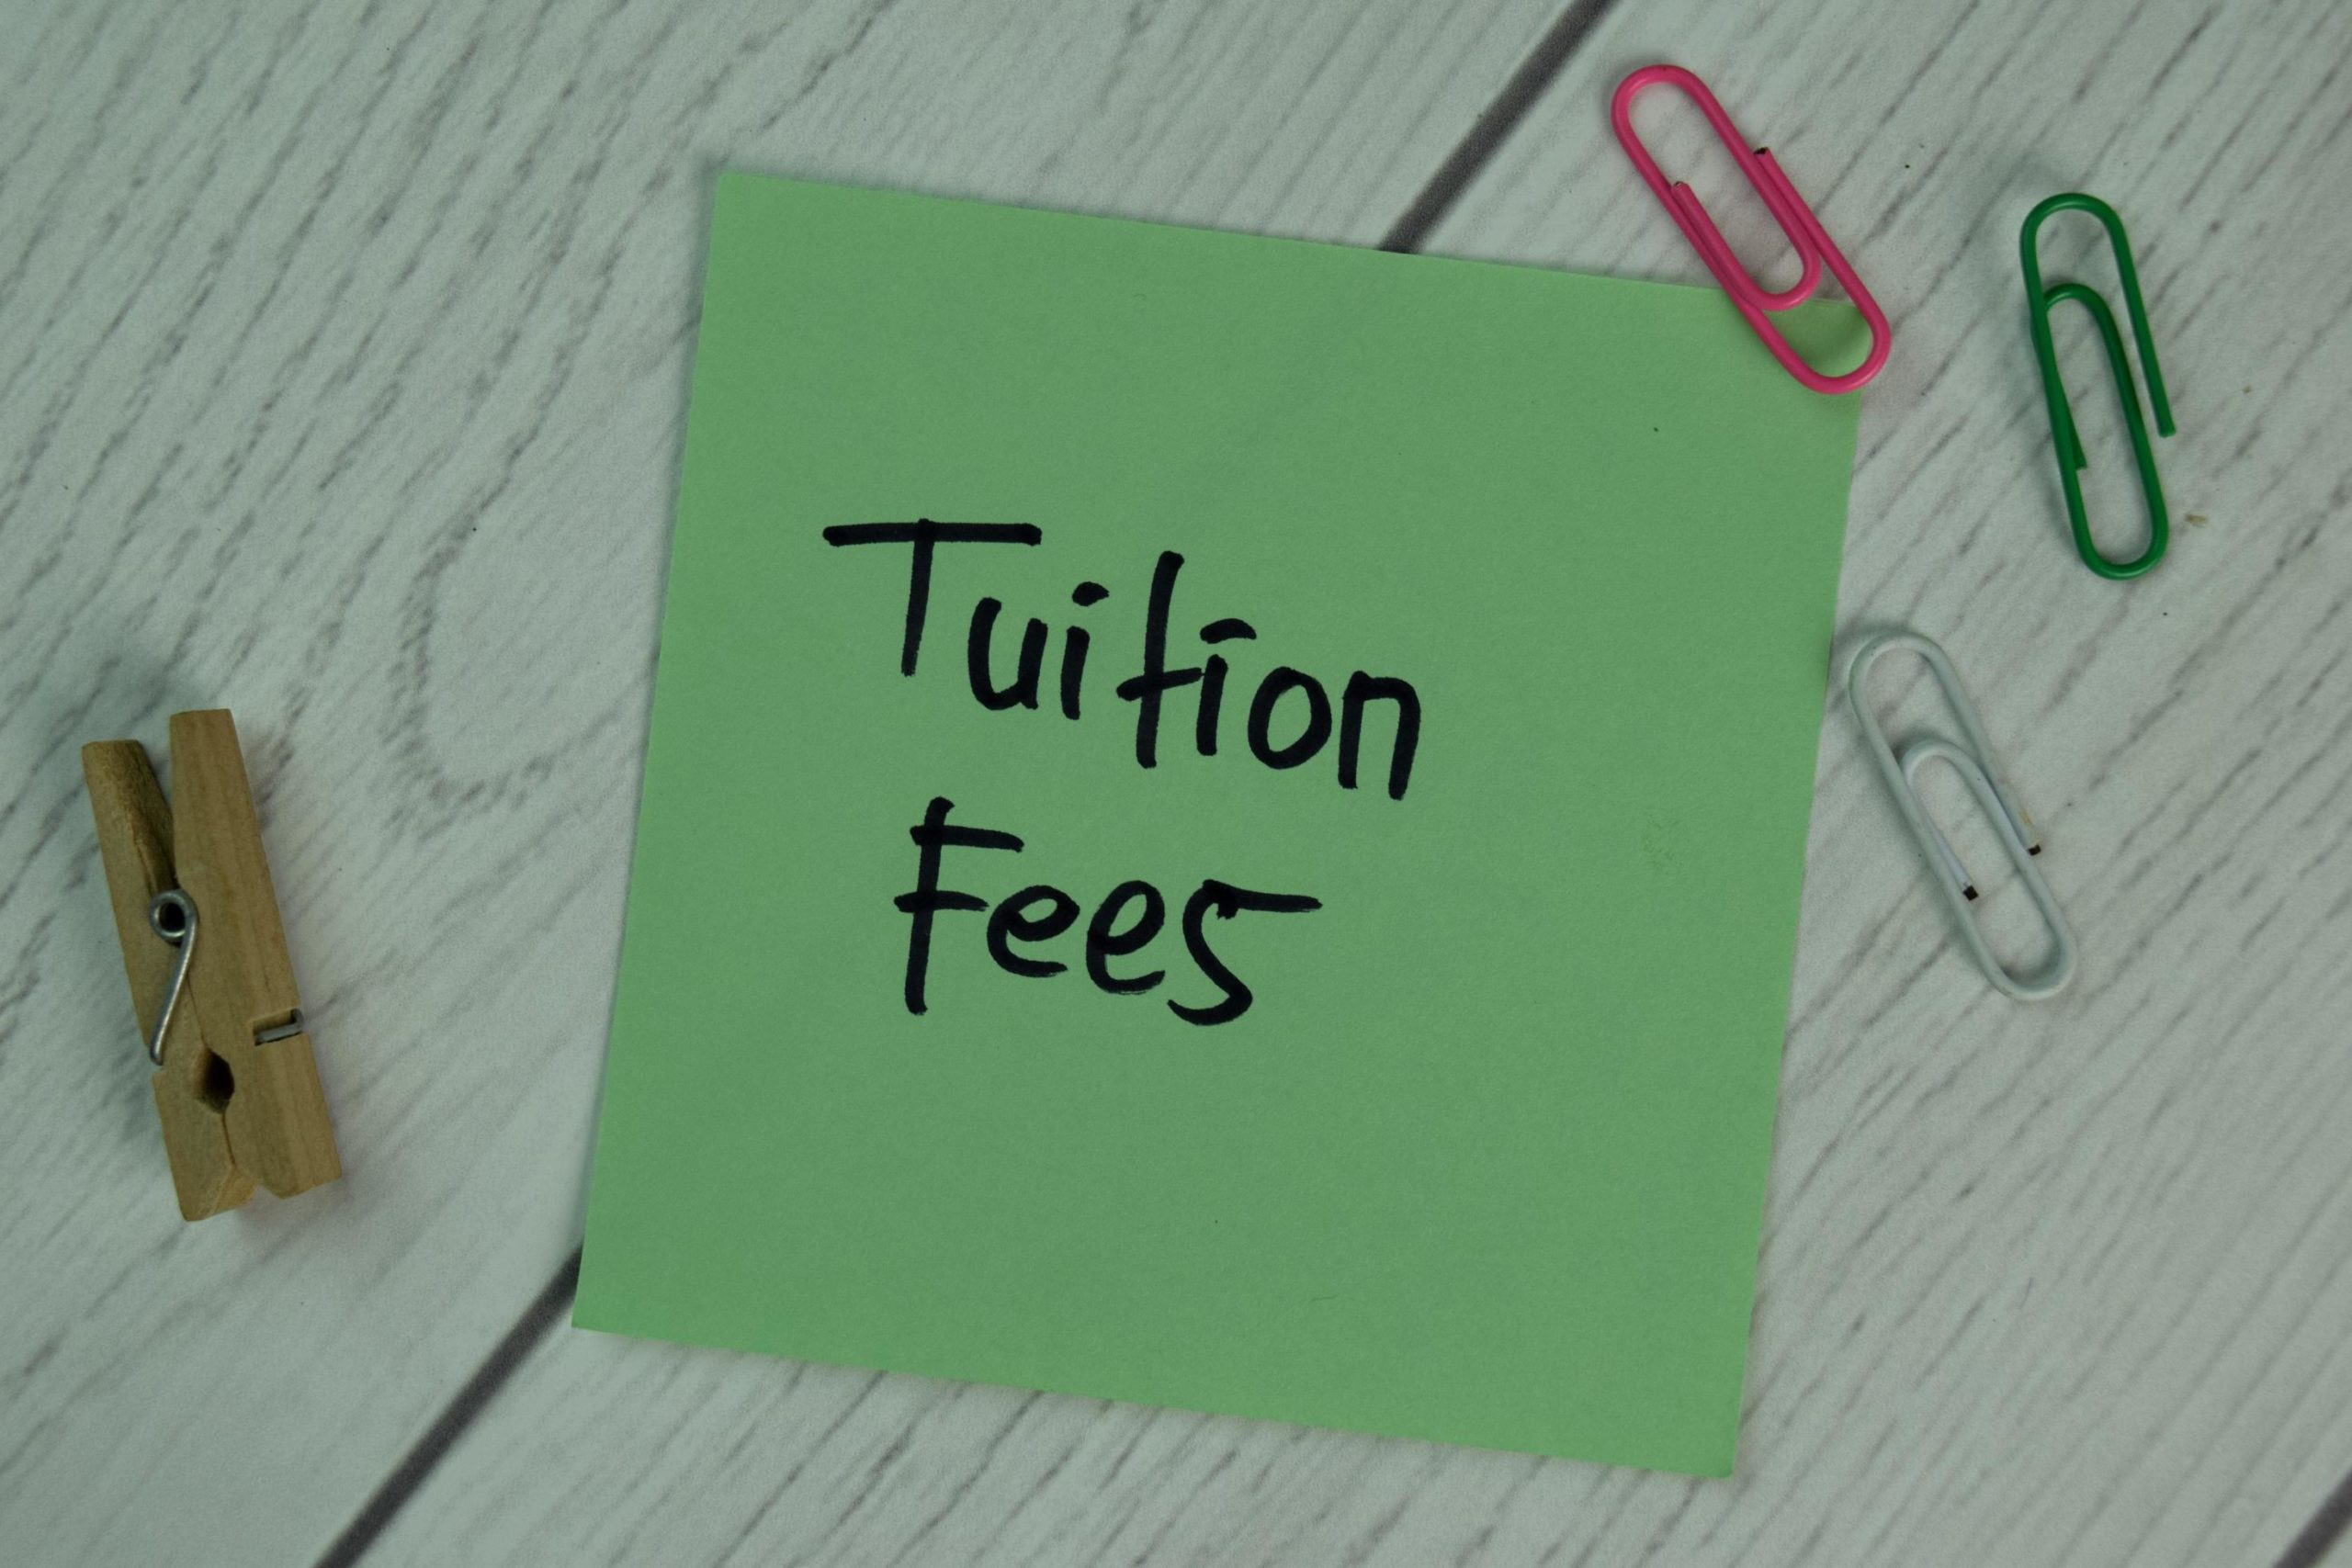 Tuition fees